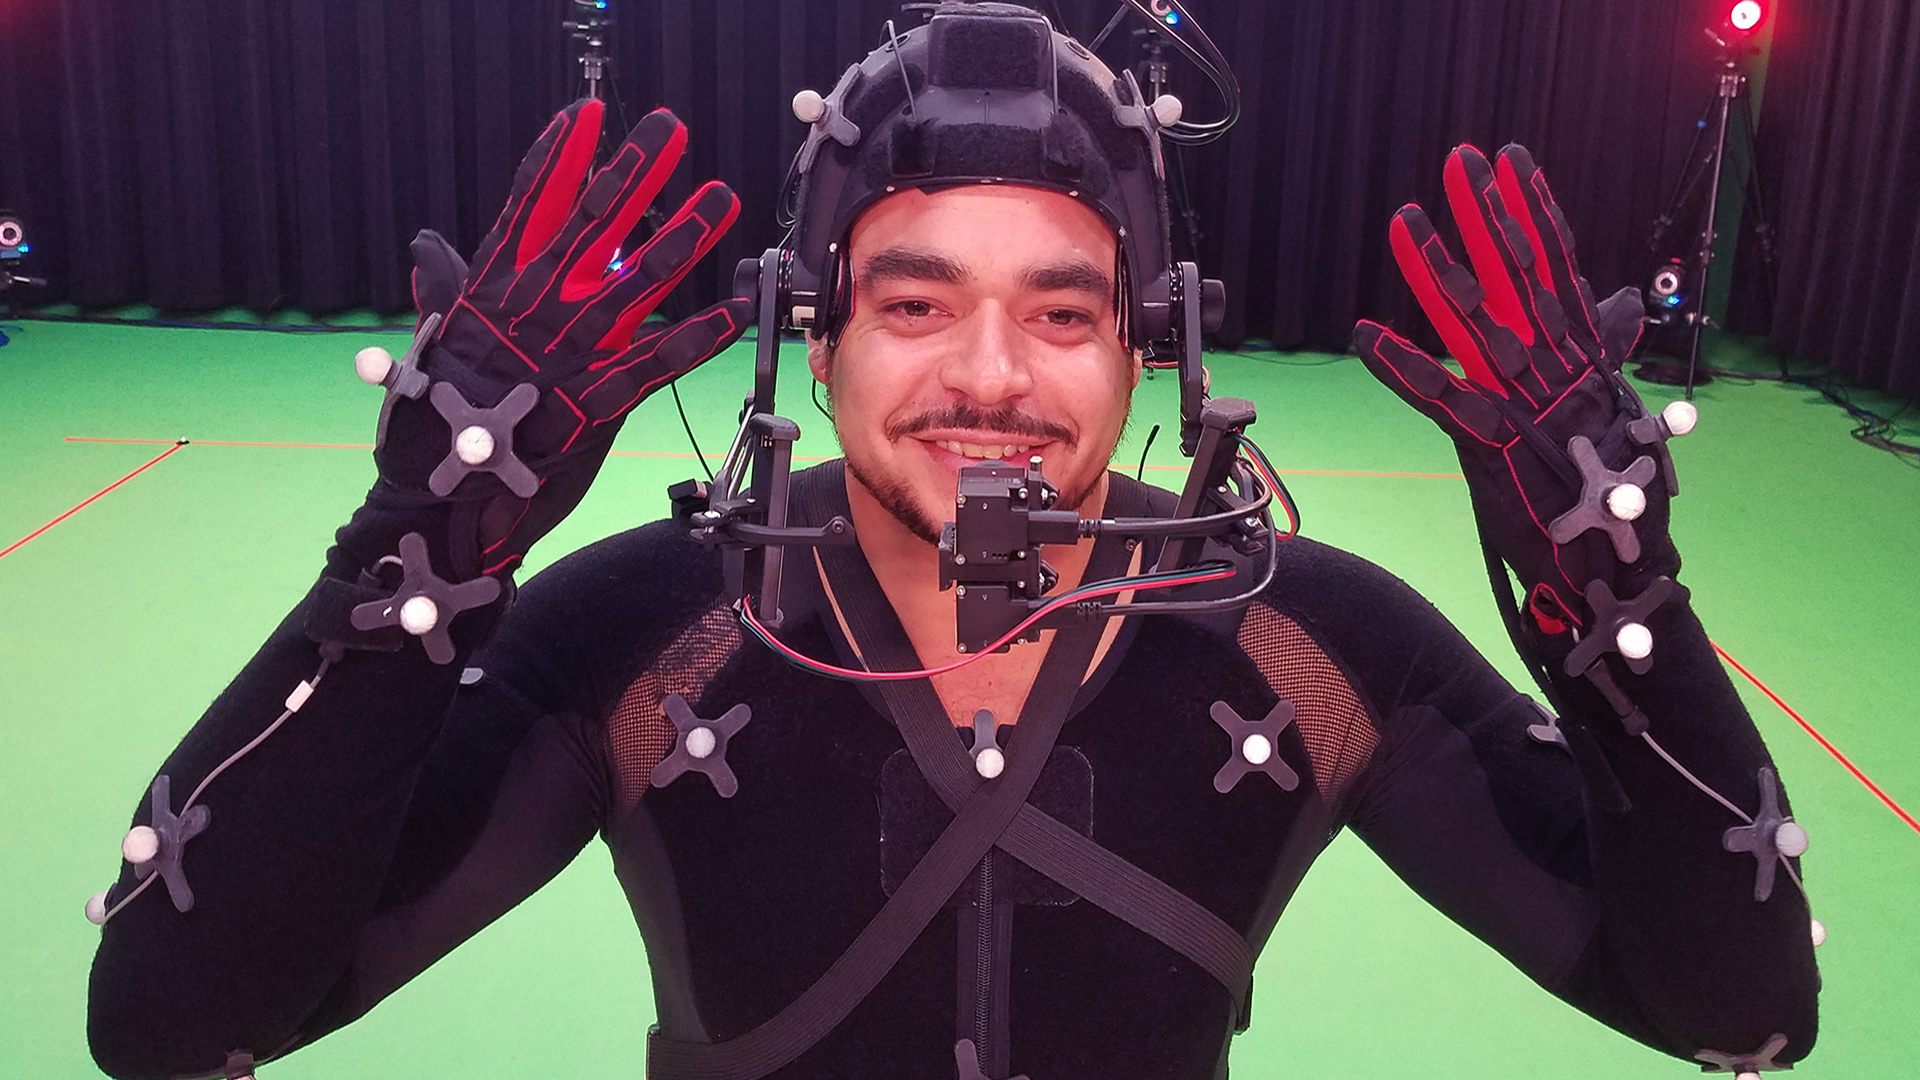 Inertial Motion Capture Glove